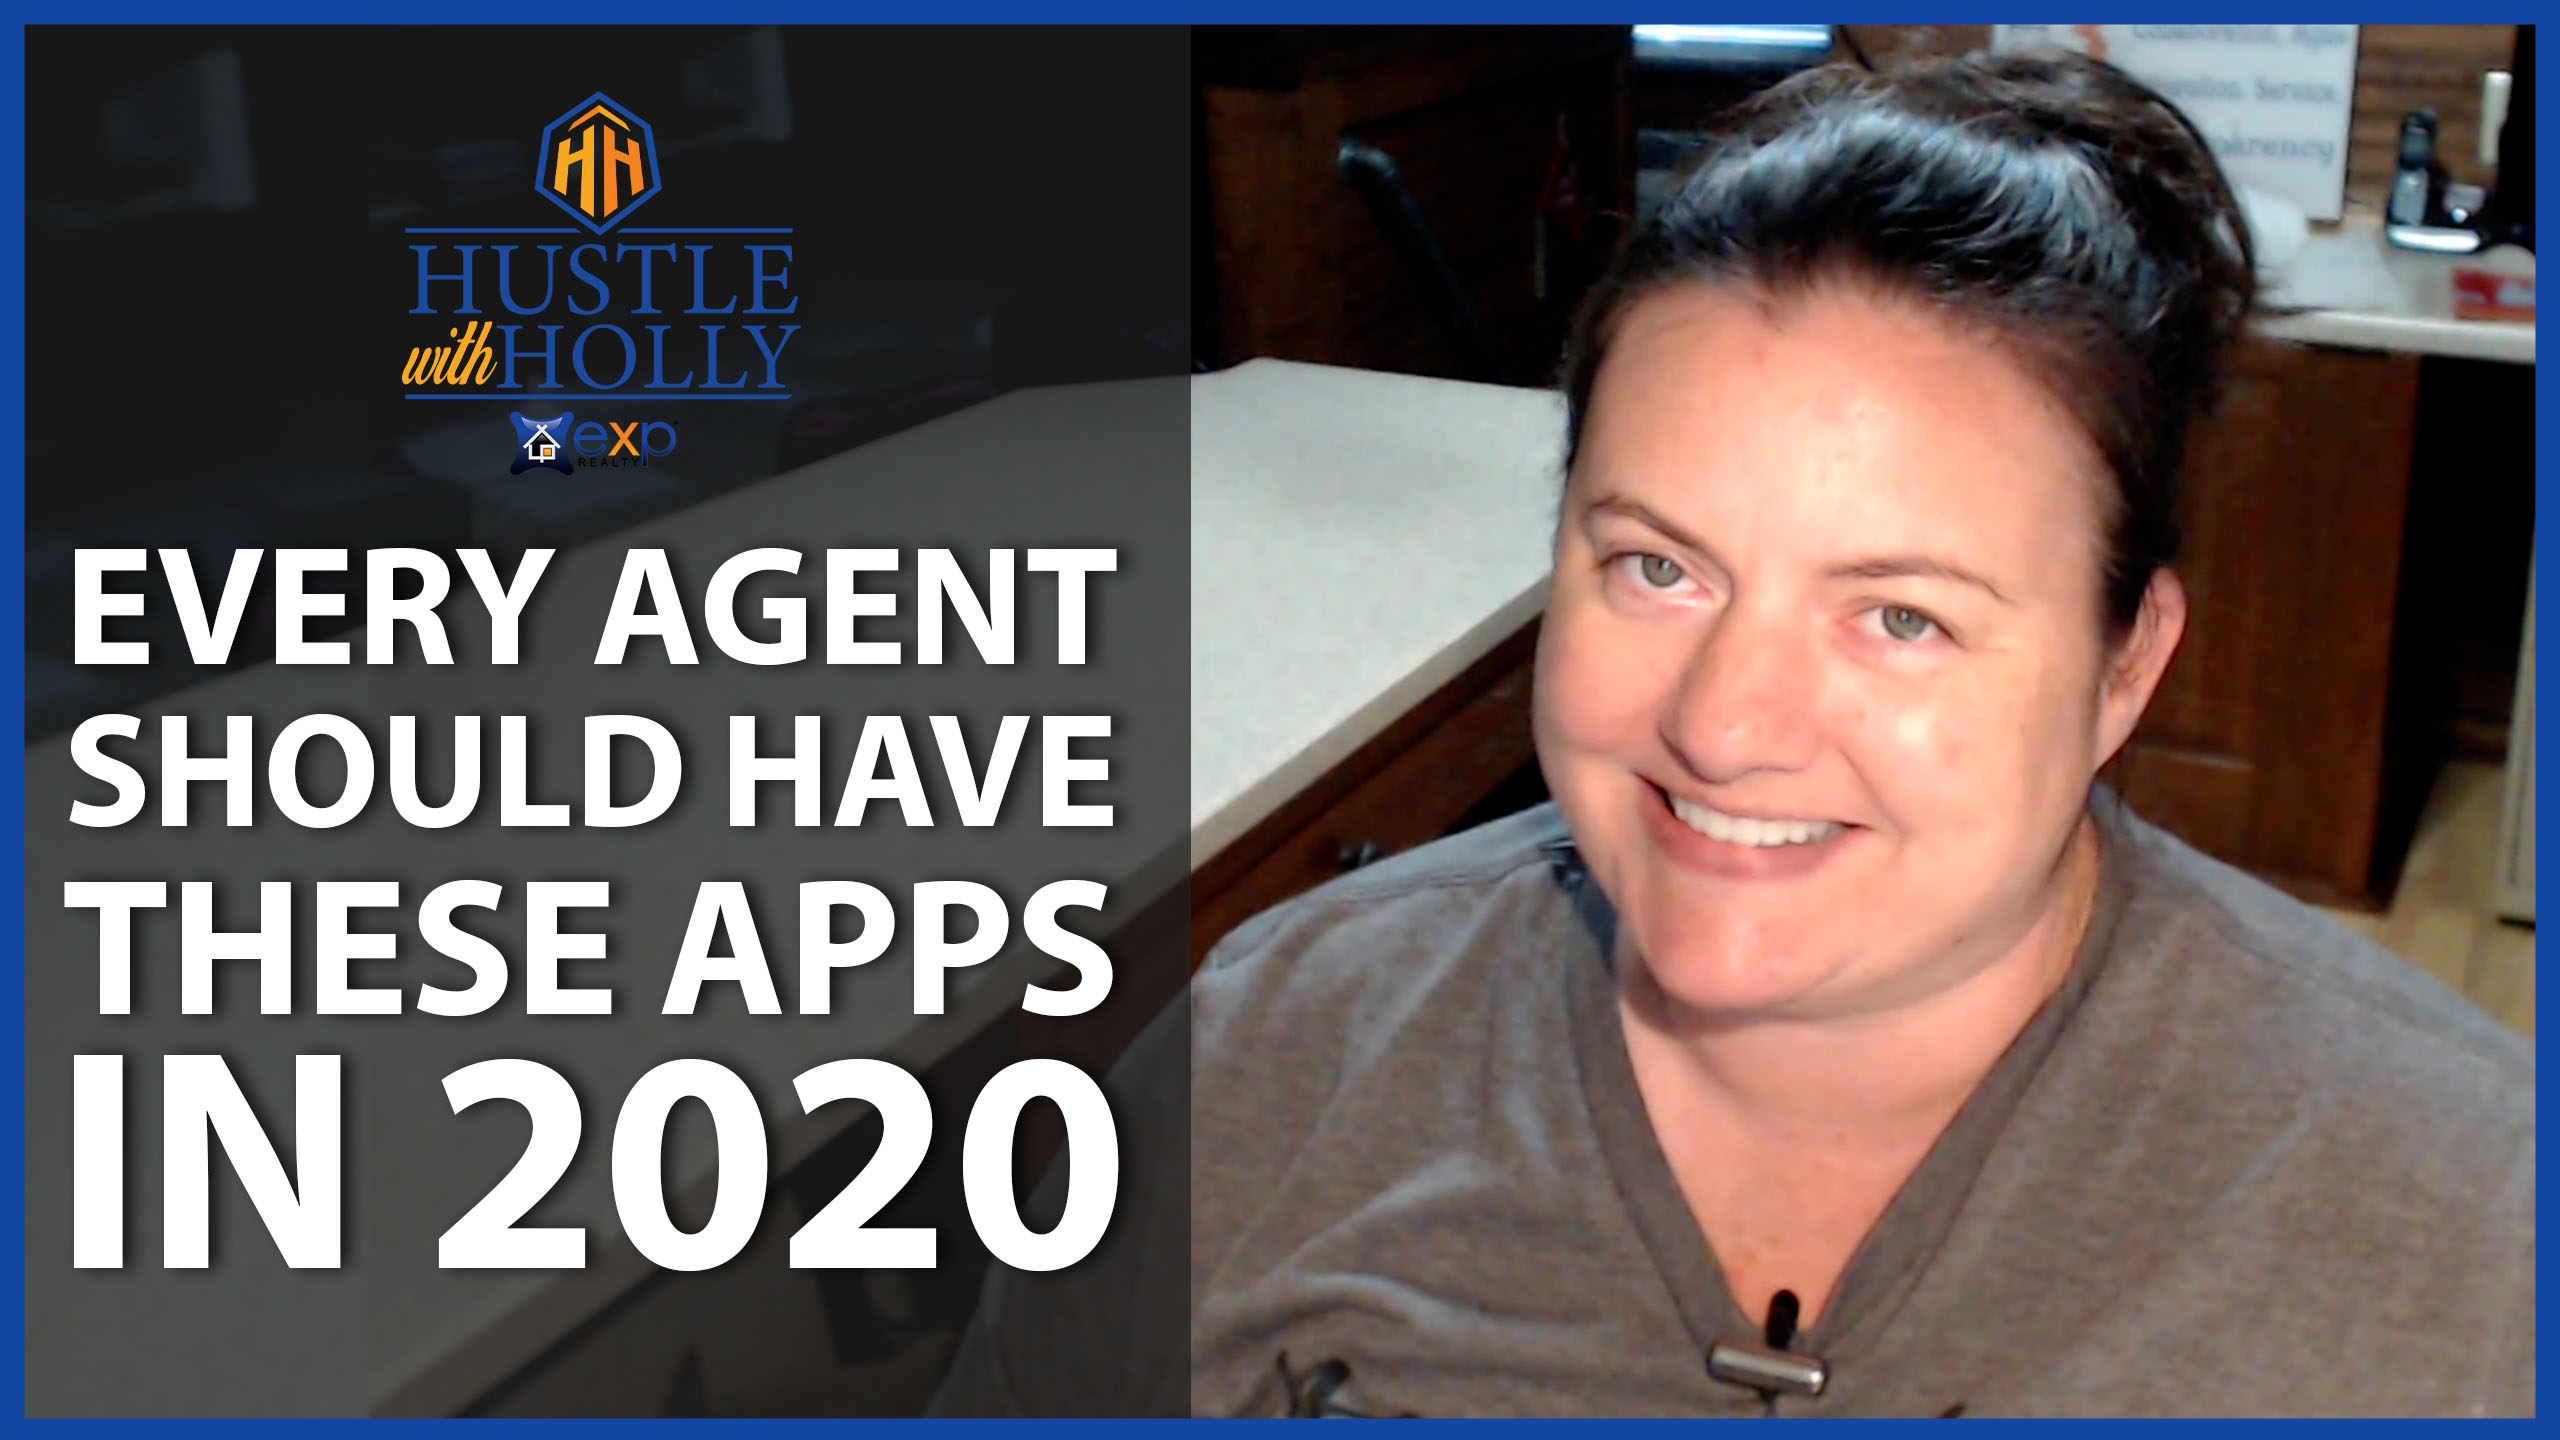 Q: Which Apps Should Every Agent Have in 2020?